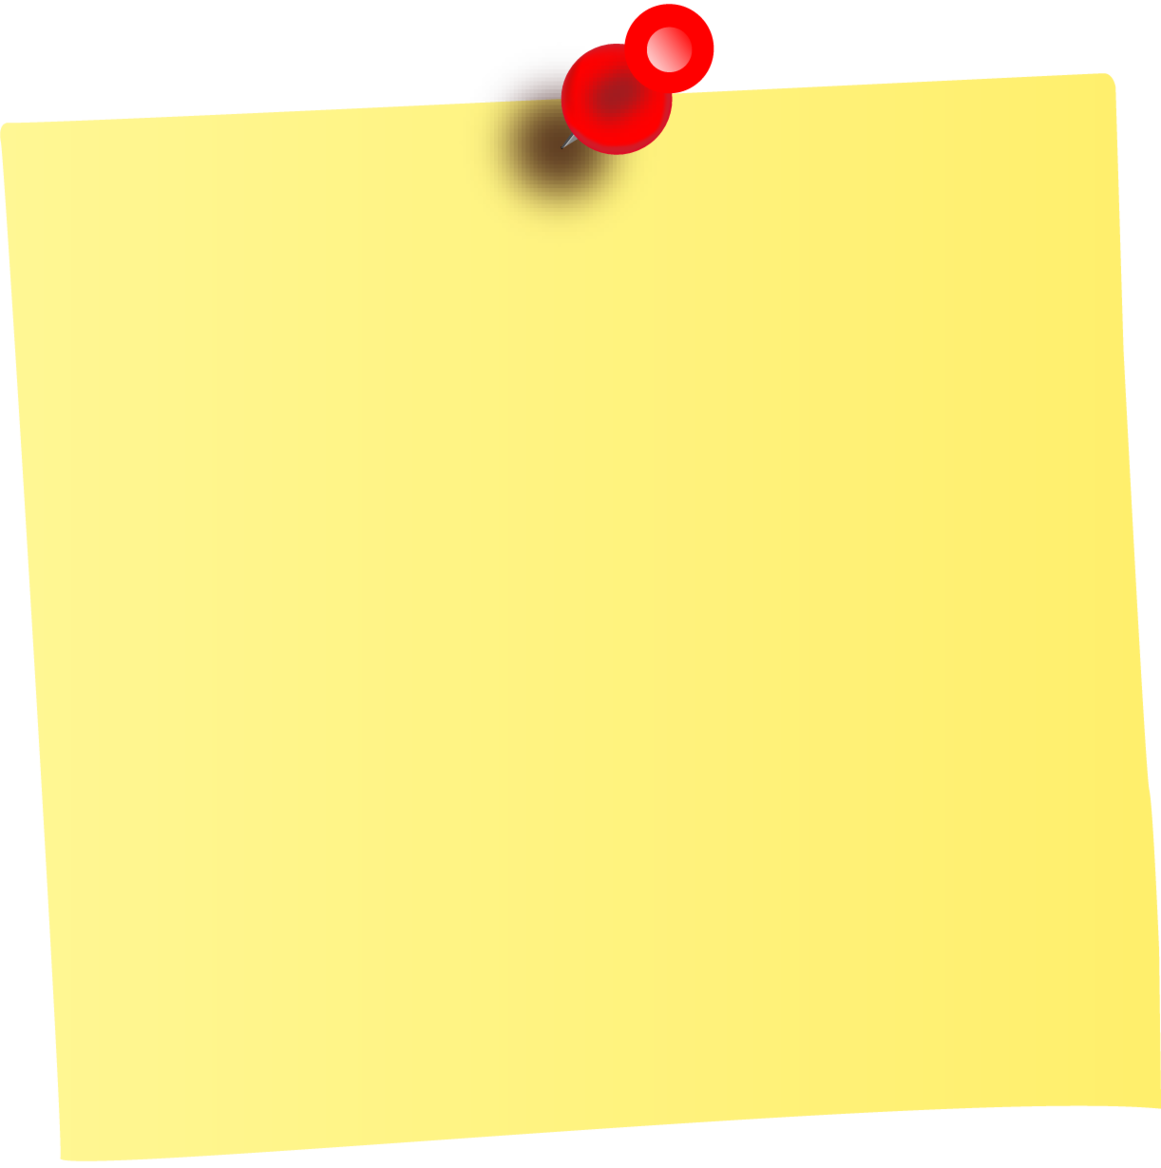 Stickynotes HD PNG